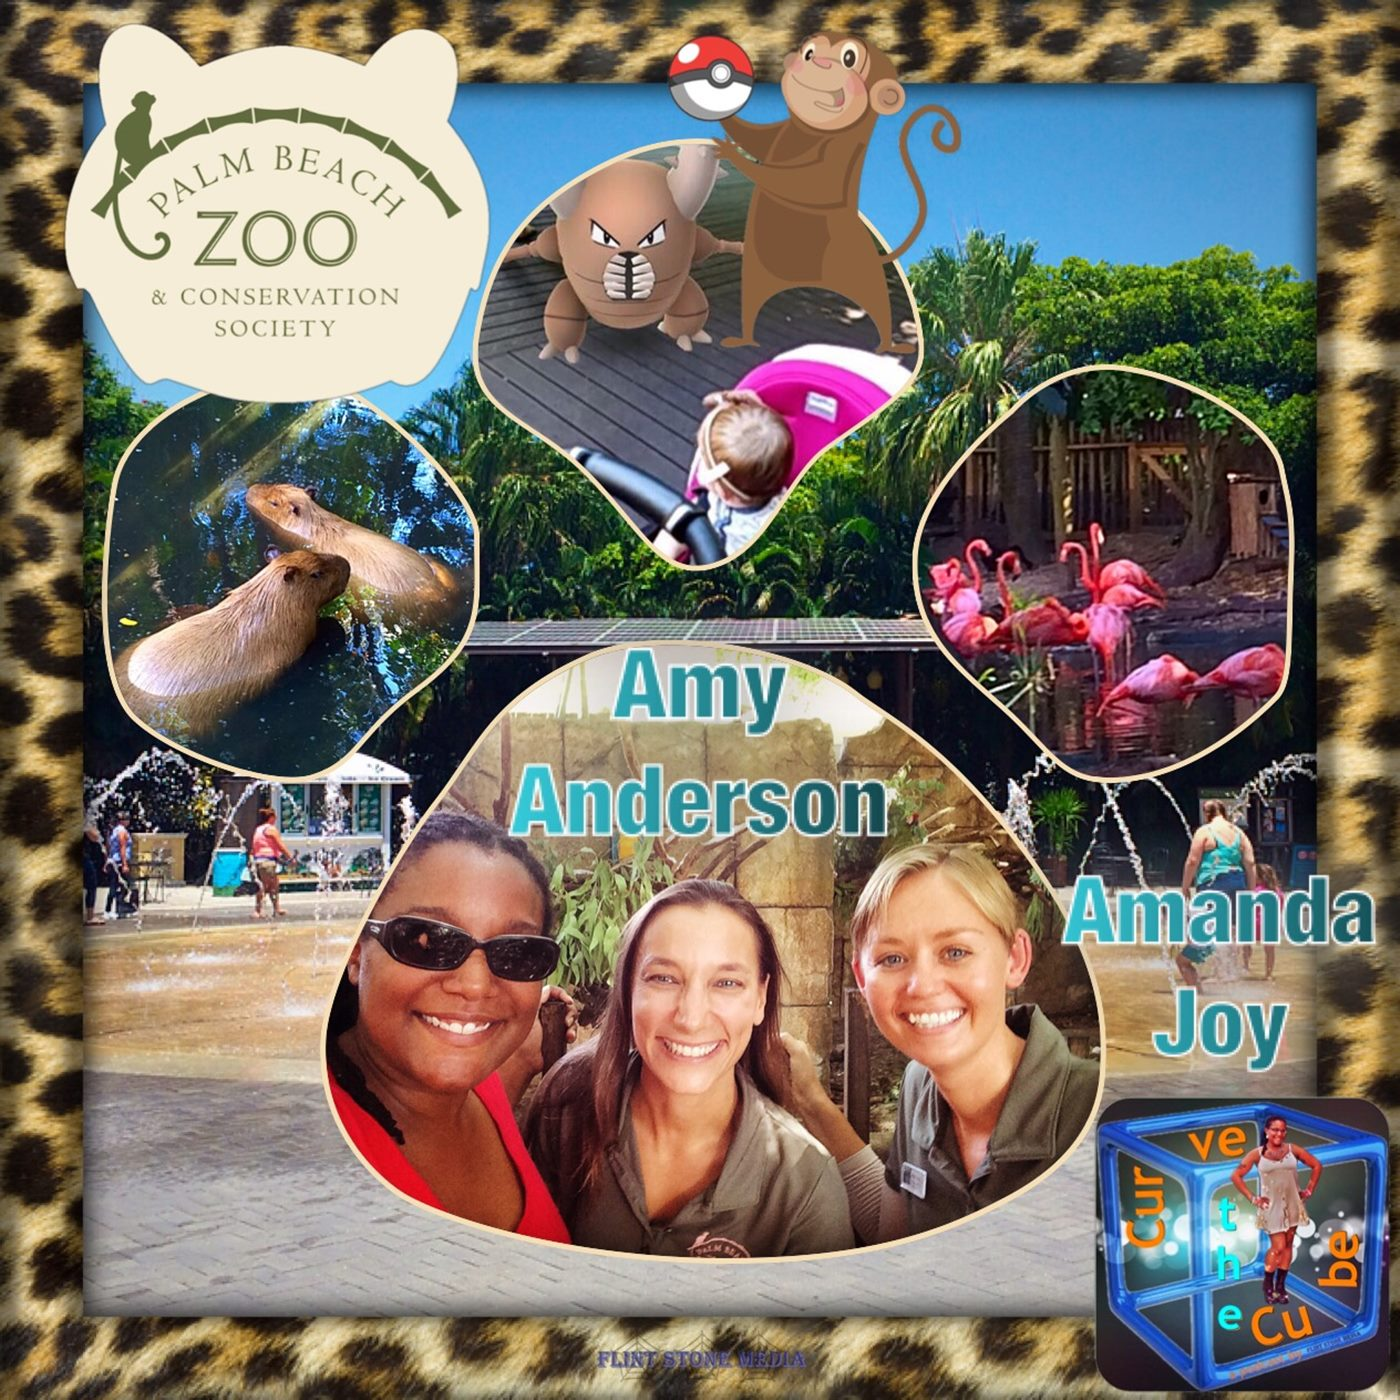 #88 – NON-PROFIT – Palm Beach Zoo – 2016-07-30